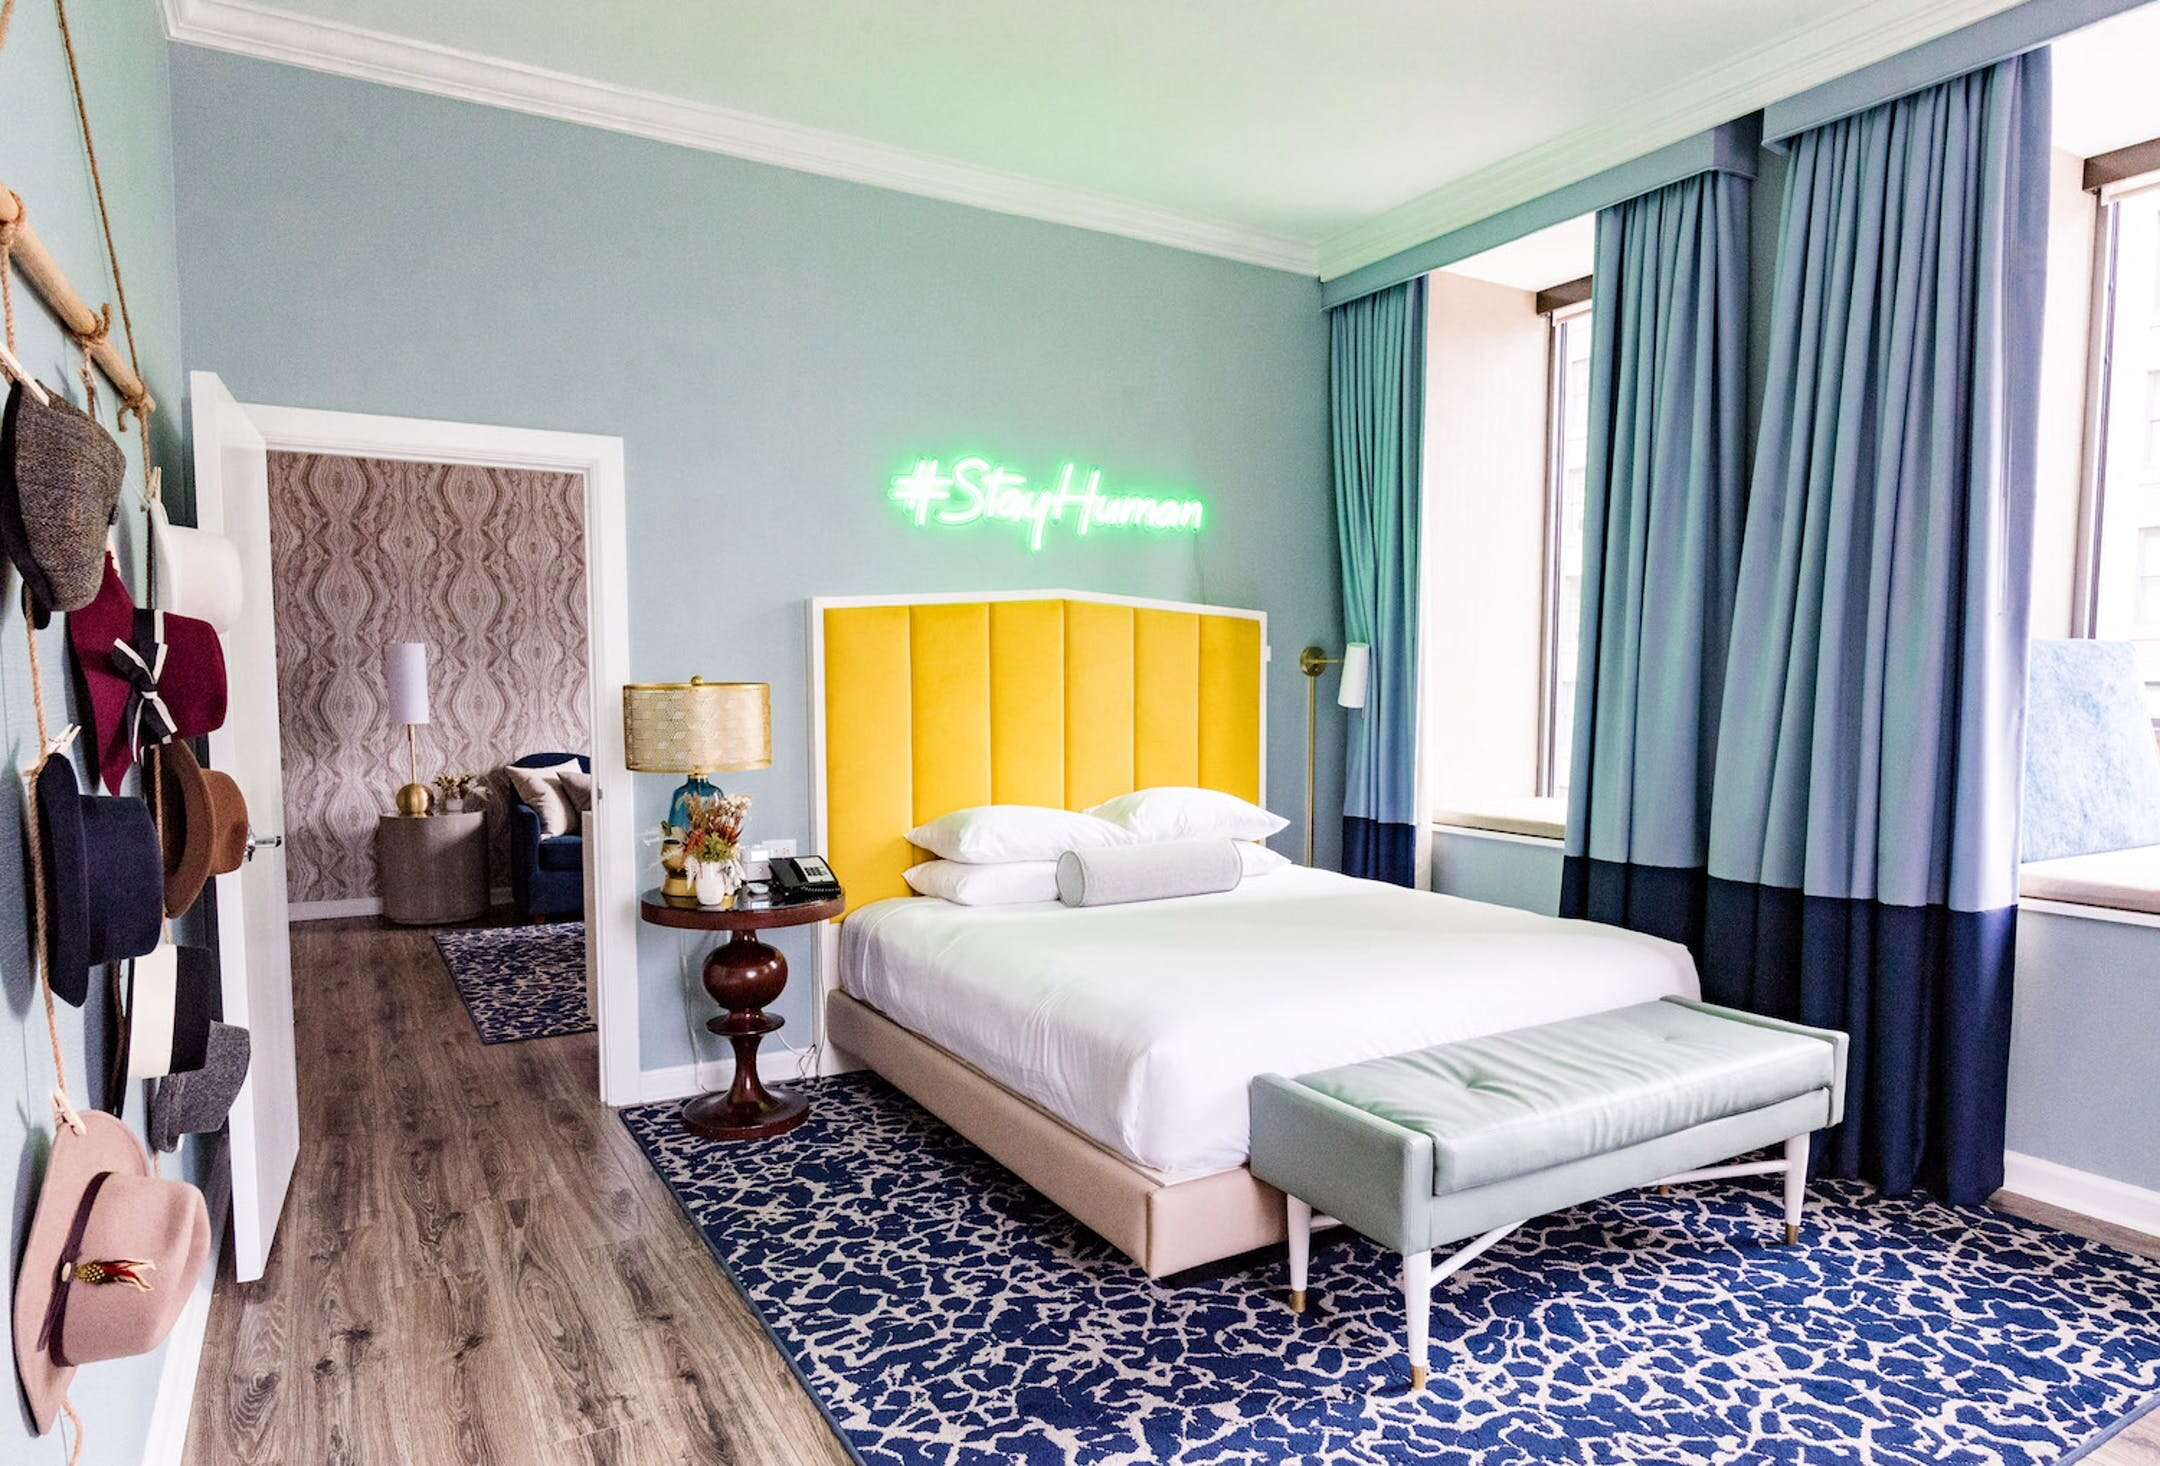 AFARHotels Are Trying to Spark More Meaningful Connections. Is It Working? -